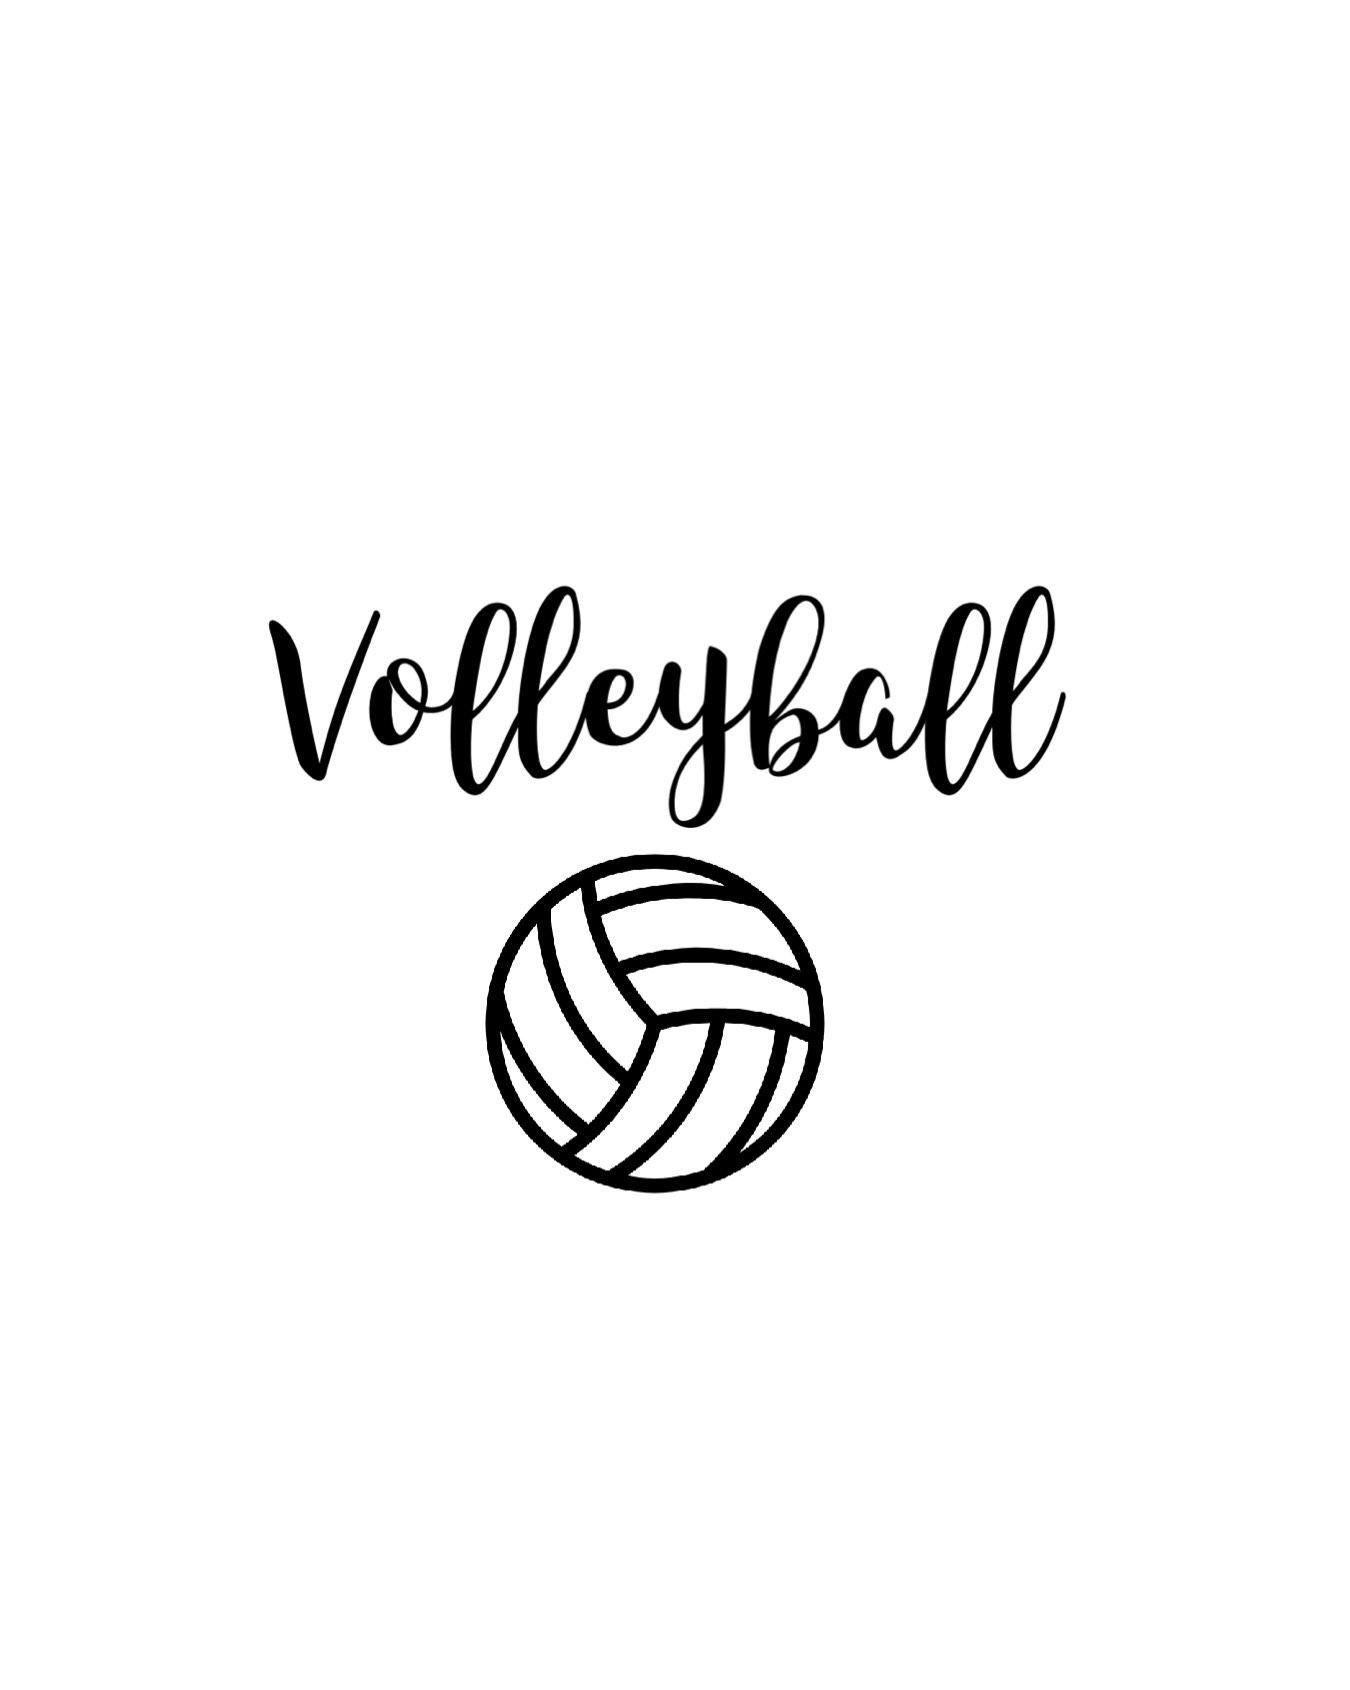 Cute Aesthetic Volleyball Wallpapers